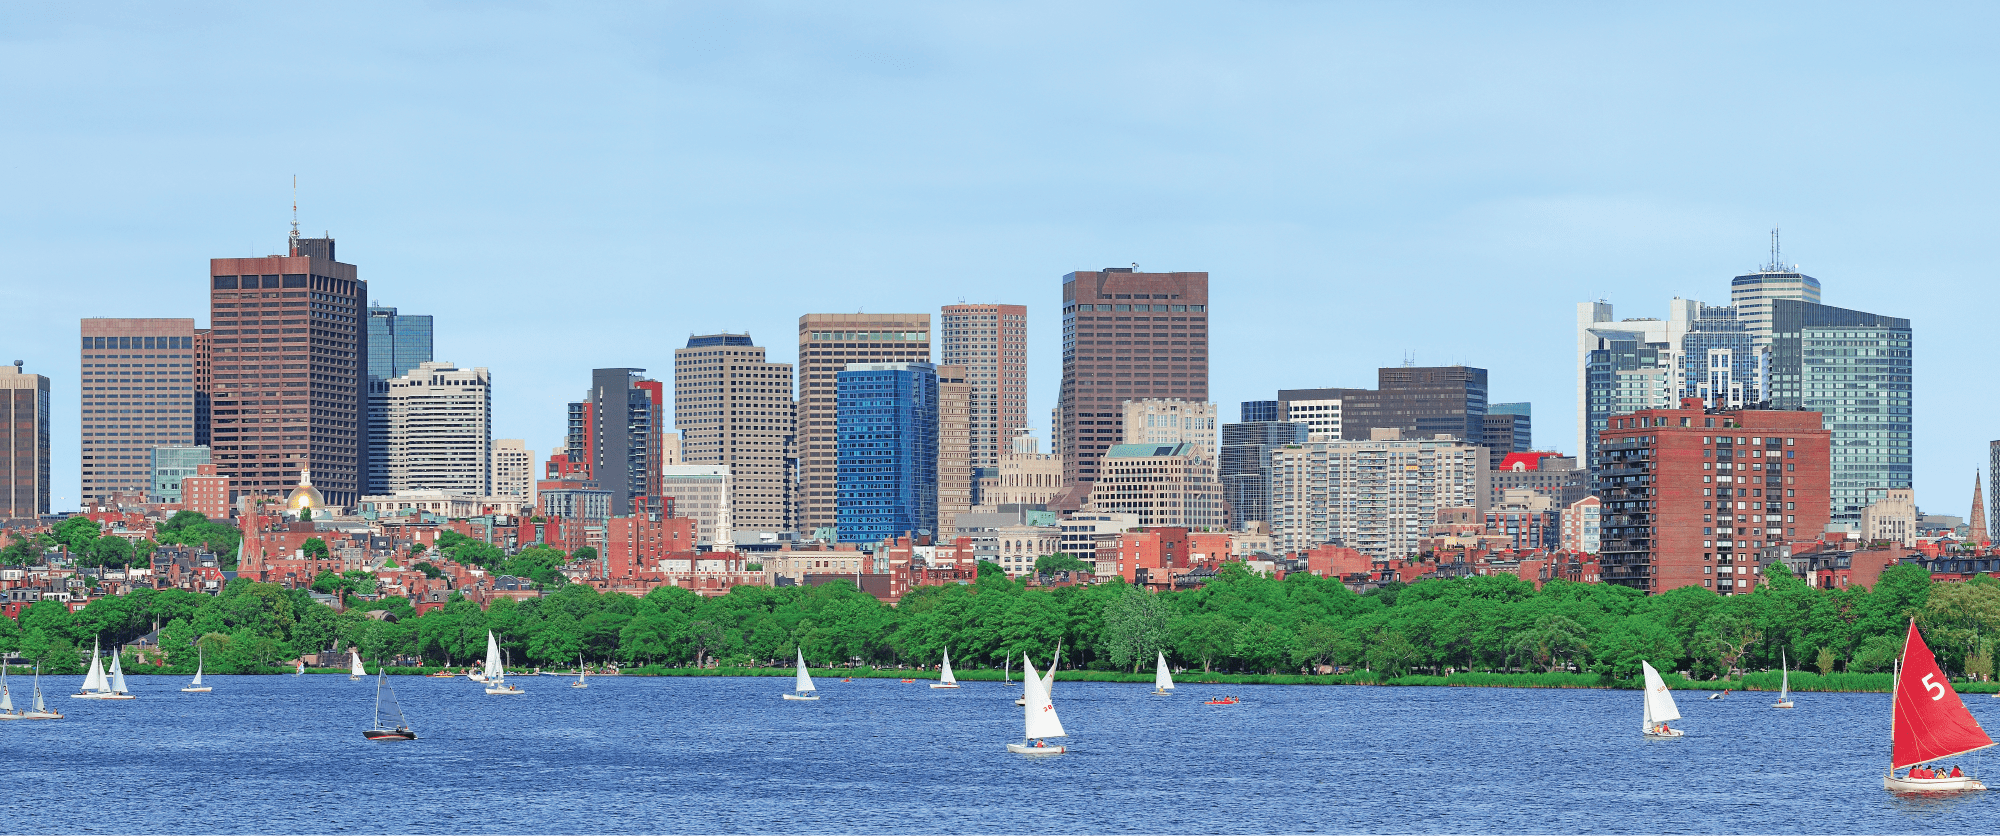 boston_skyline1-01-min